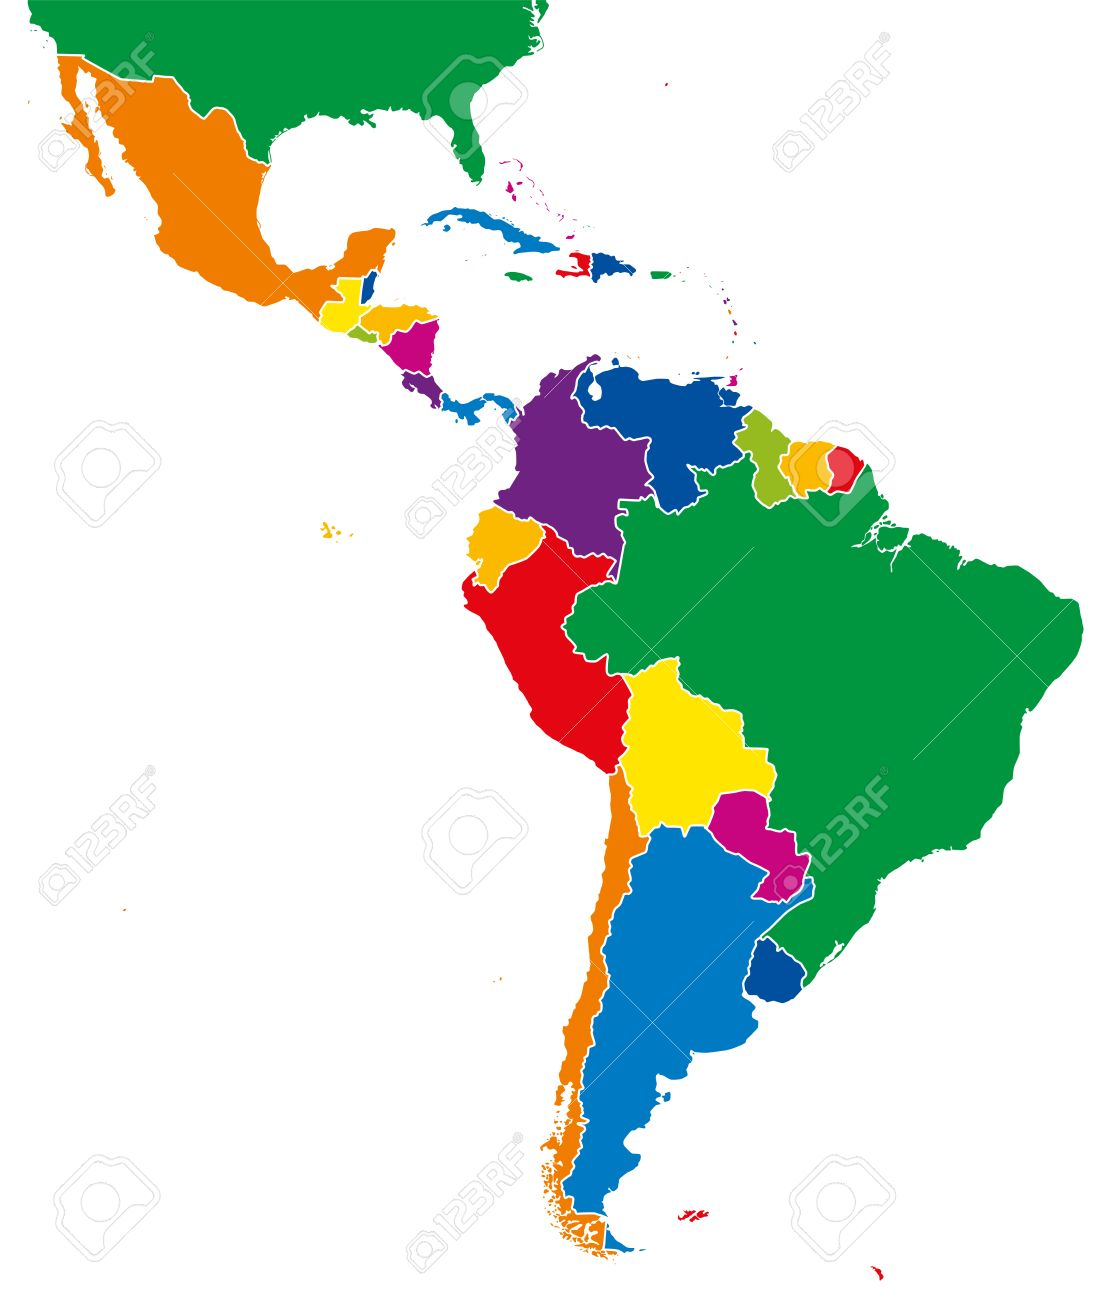 Latin America single states map. All countries in different full.. on map of southern uk, map of southern grenada, map of southern zambia, map of southern east coast, paraguay map south america, map of southern ethiopia, temples in south america, ancient temples south america, map of southern us beaches, southern cone of latin america, map of africa, the southern region of america, map of central andes, map of southern cambodia, road map south america, map of southern singapore, map of southern mediterranean countries, map of southern us states, map of southern continent, map of central america,